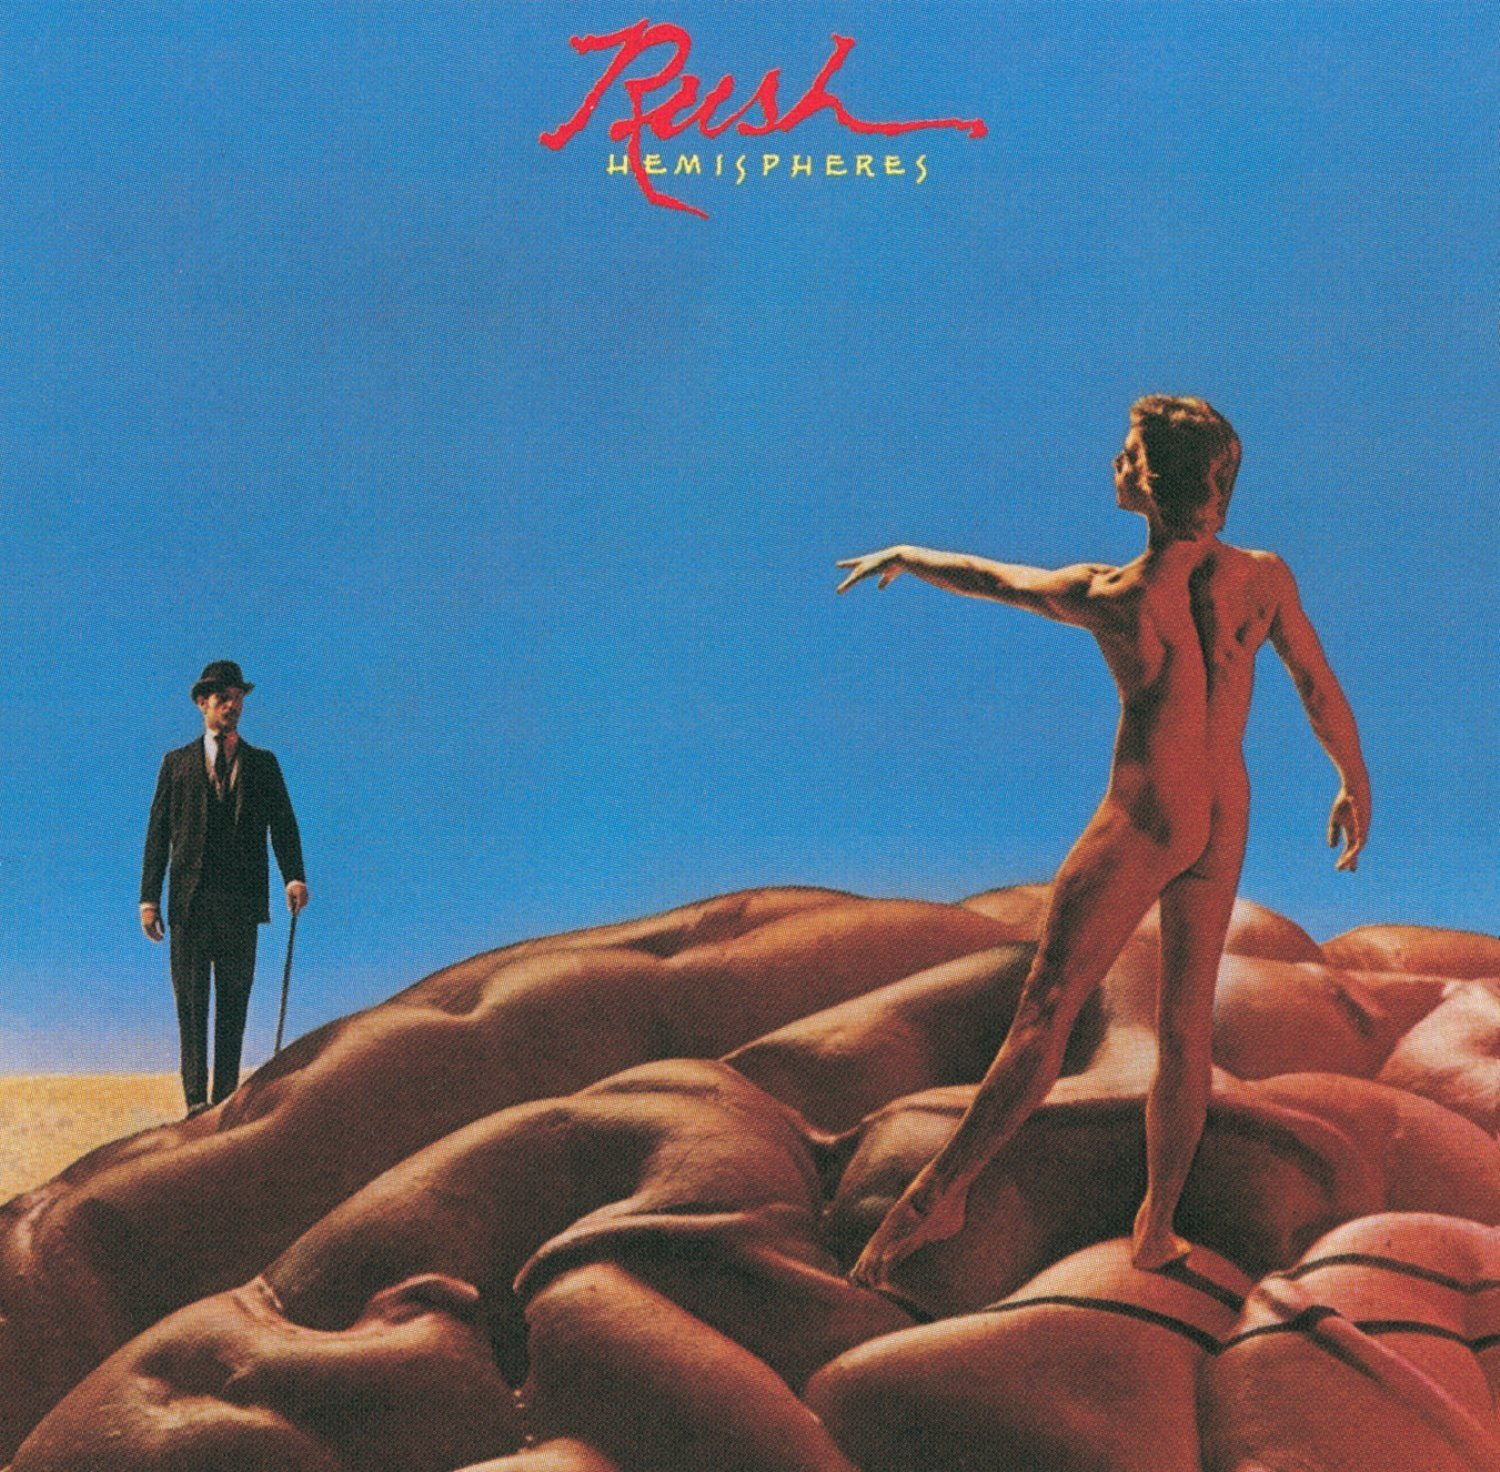 Hemispheres Vinyl LP Free shipping Daily bargain sale anywhere in the nation